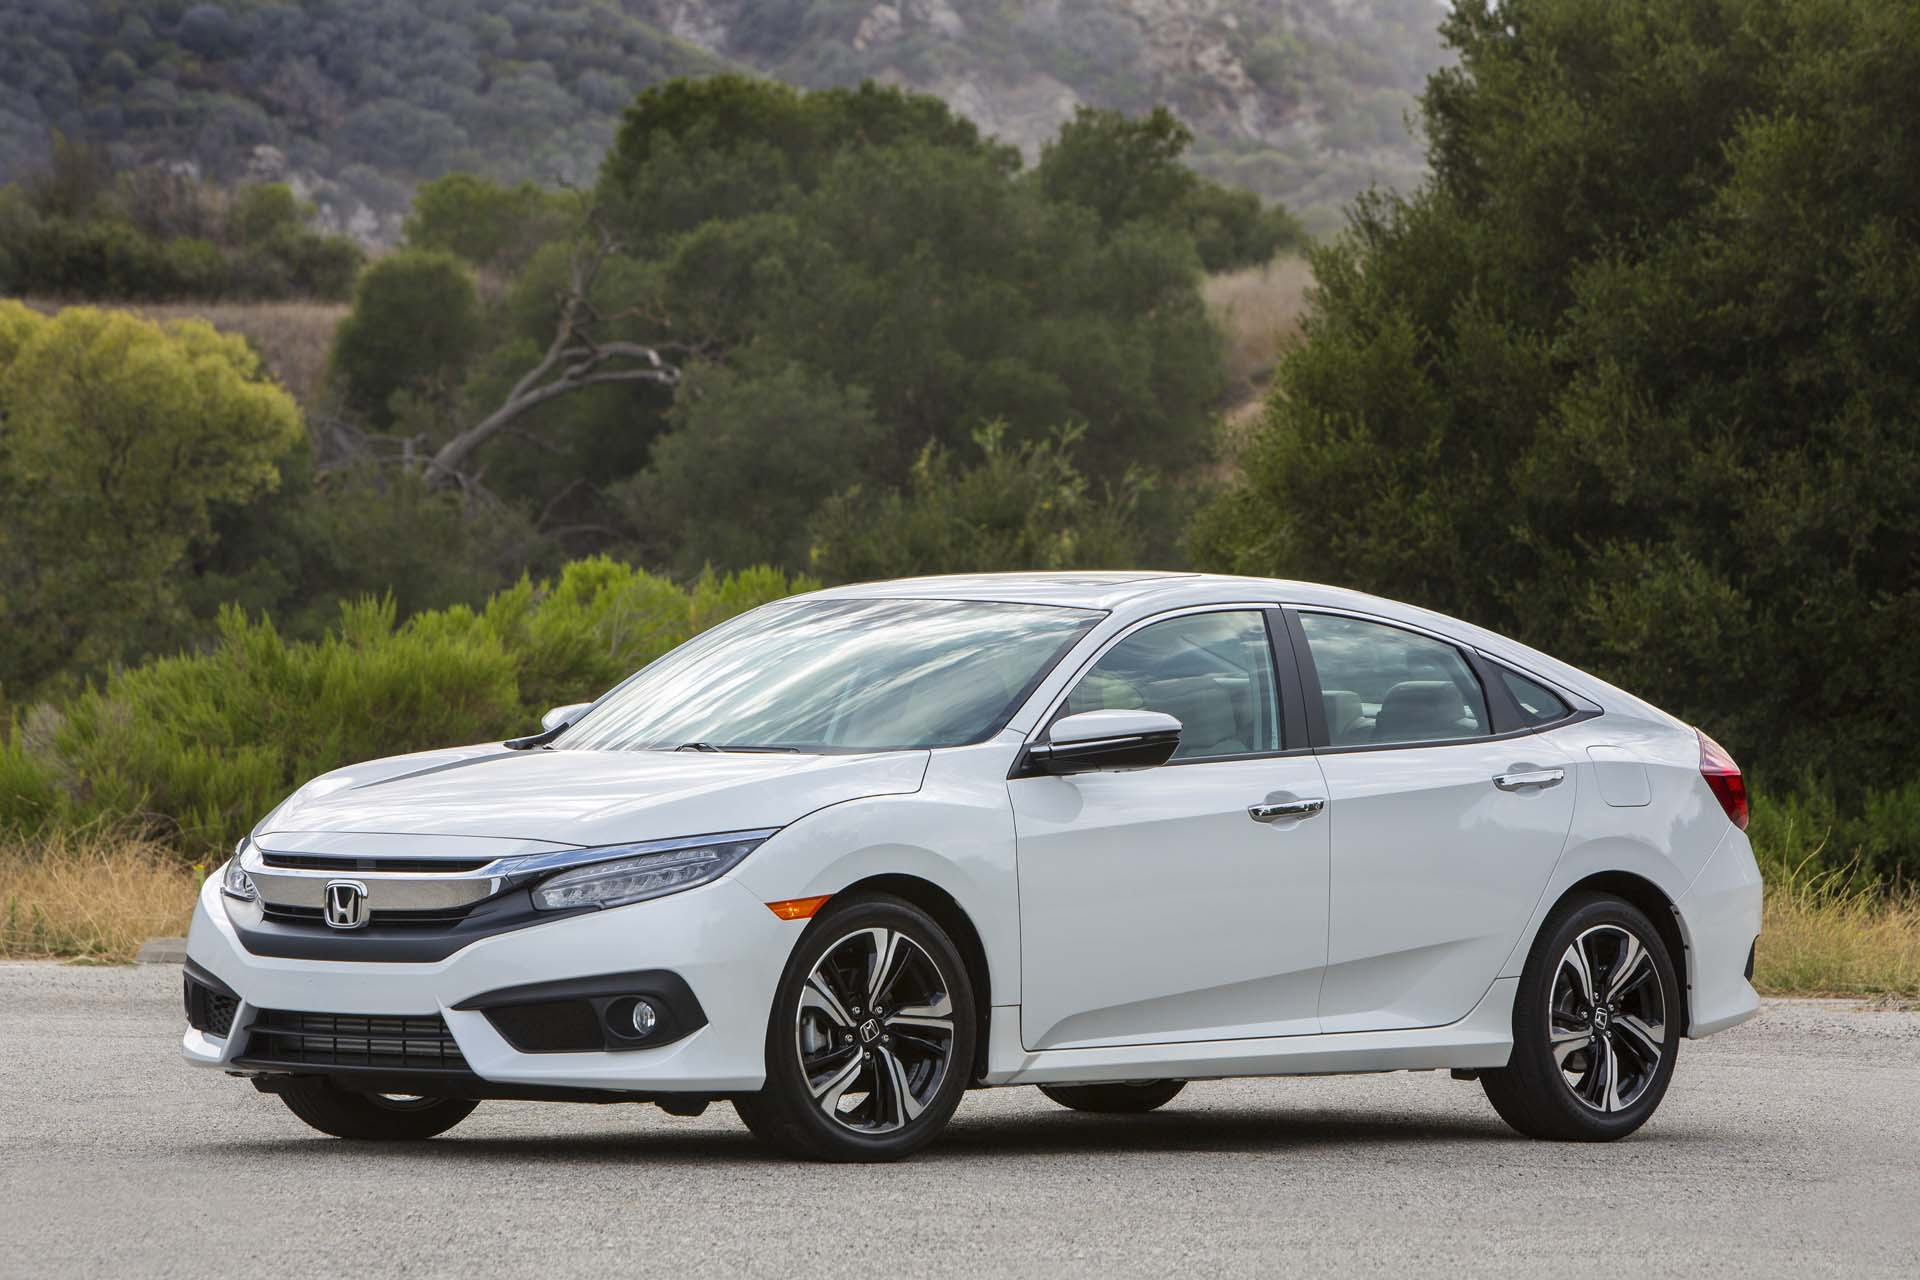 Honda Civic The Car Connection S Best Economy Vehicle To 2017